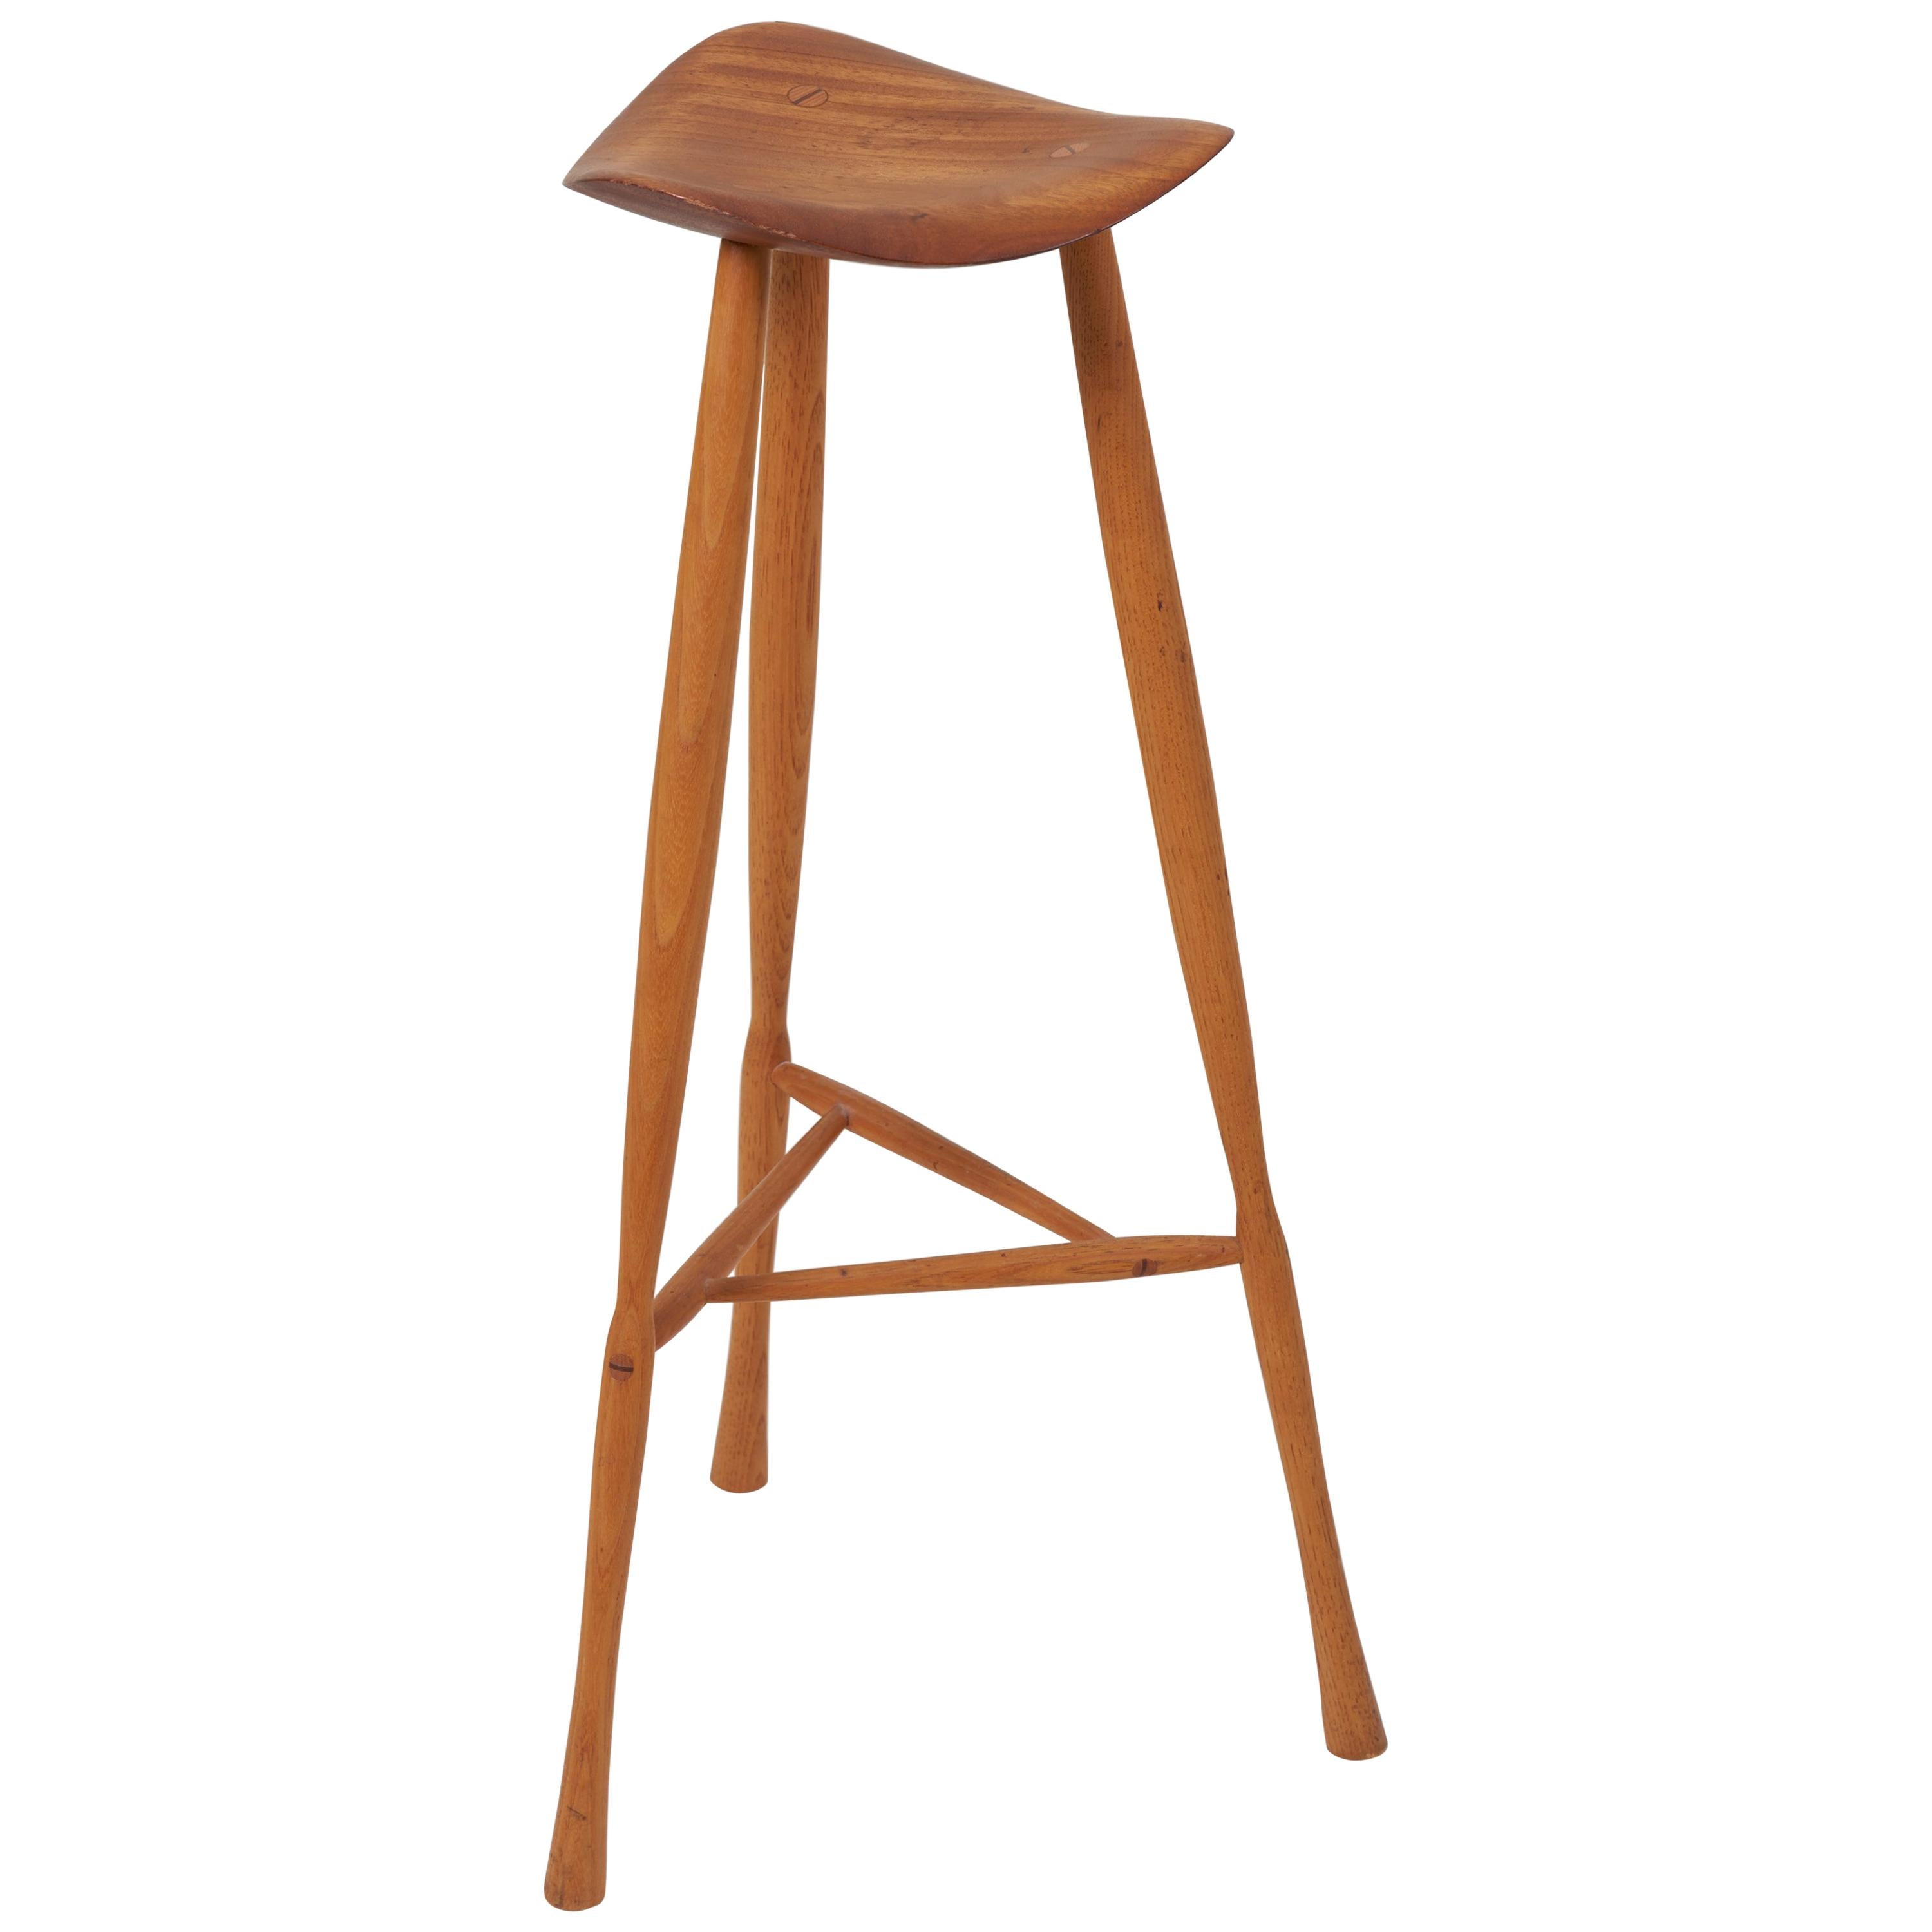 Outstanding Studio Craft Stool By Karl Seemuller Us 1975 Andrewgaddart Wooden Chair Designs For Living Room Andrewgaddartcom